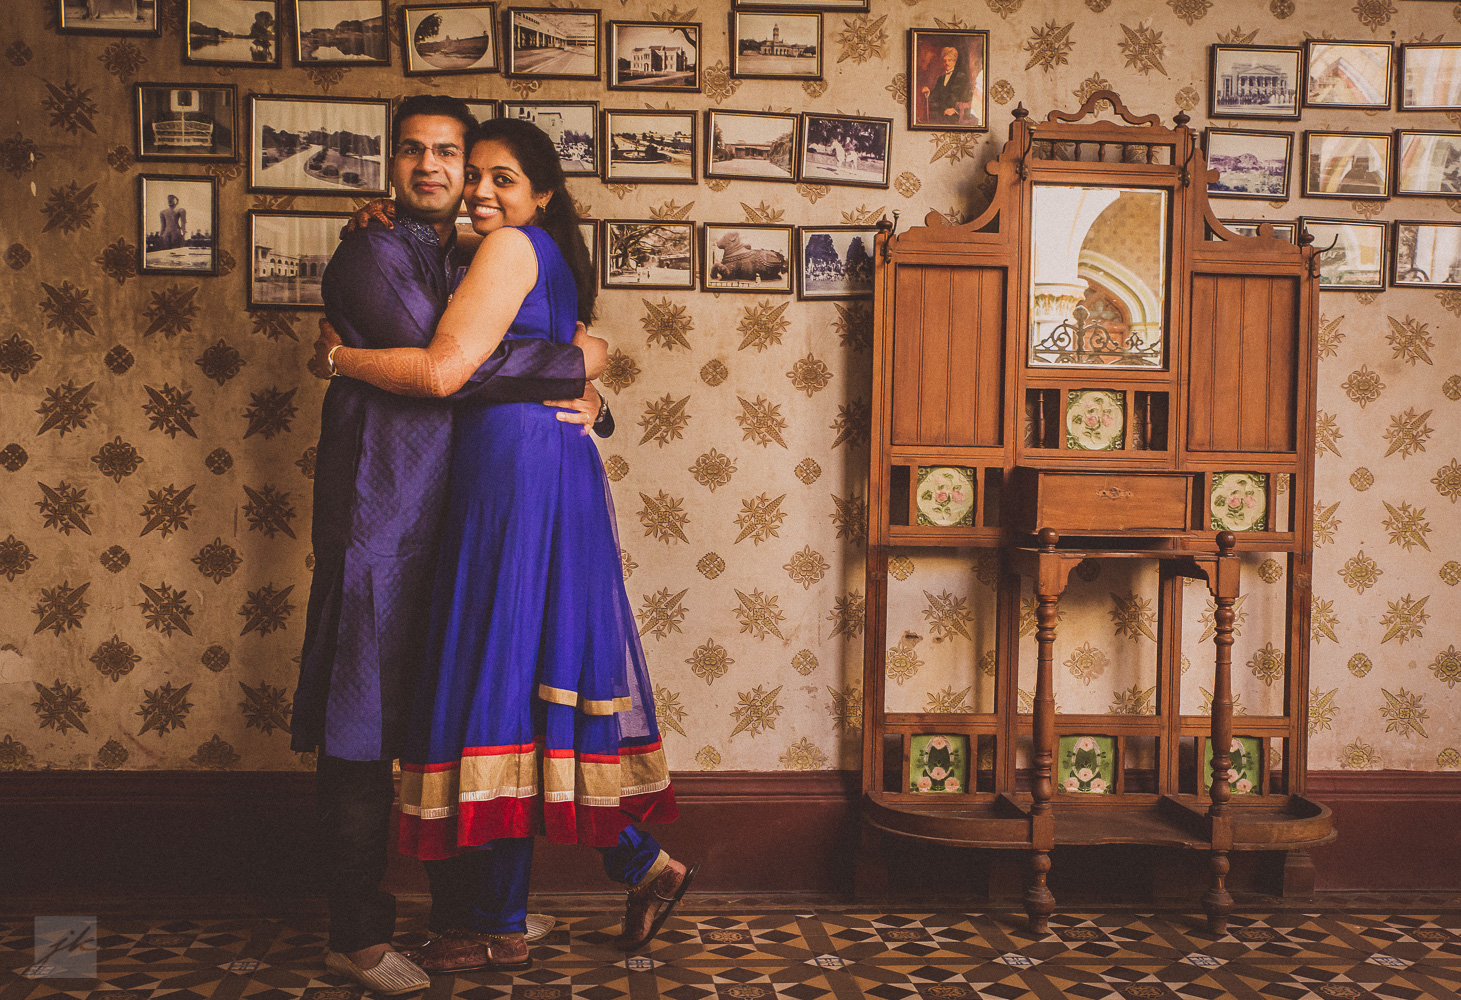 Best Candid Photographer in Bangalore, Coimbatore, Hyderabad, Chennai, Mangalore, Pune, top indian wedding photographer, delhi wedding photographer, Bangalore Wedding Photographer, destination wedding photography